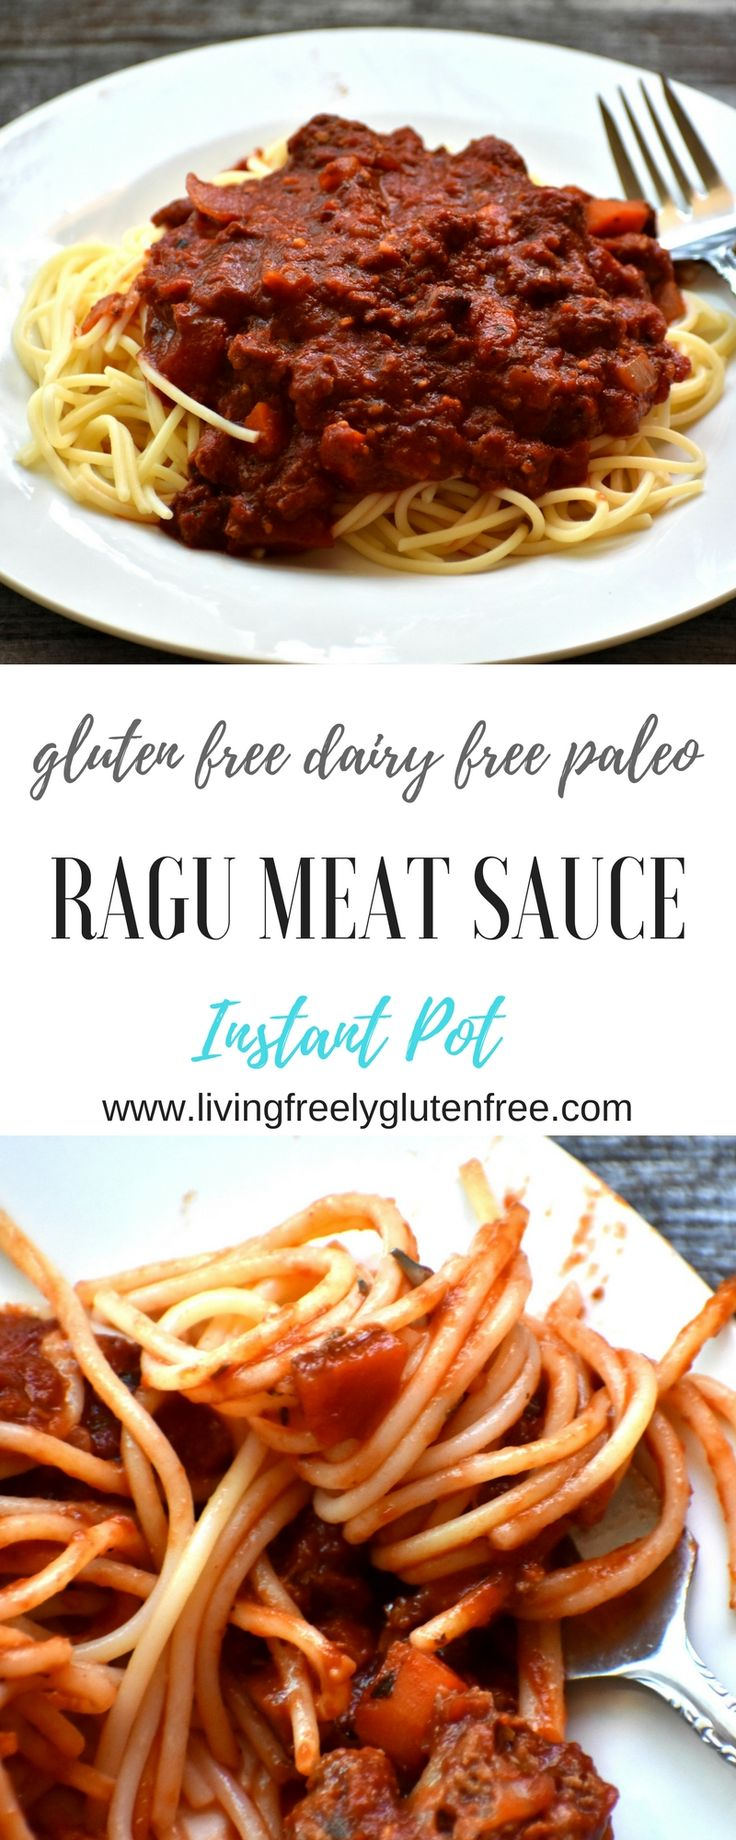 This simple but healthy and delicious meat sauce is gluten free, dairy free and paleo. It is made in the Instant Pot. www.livingfreelyglutenfree.com